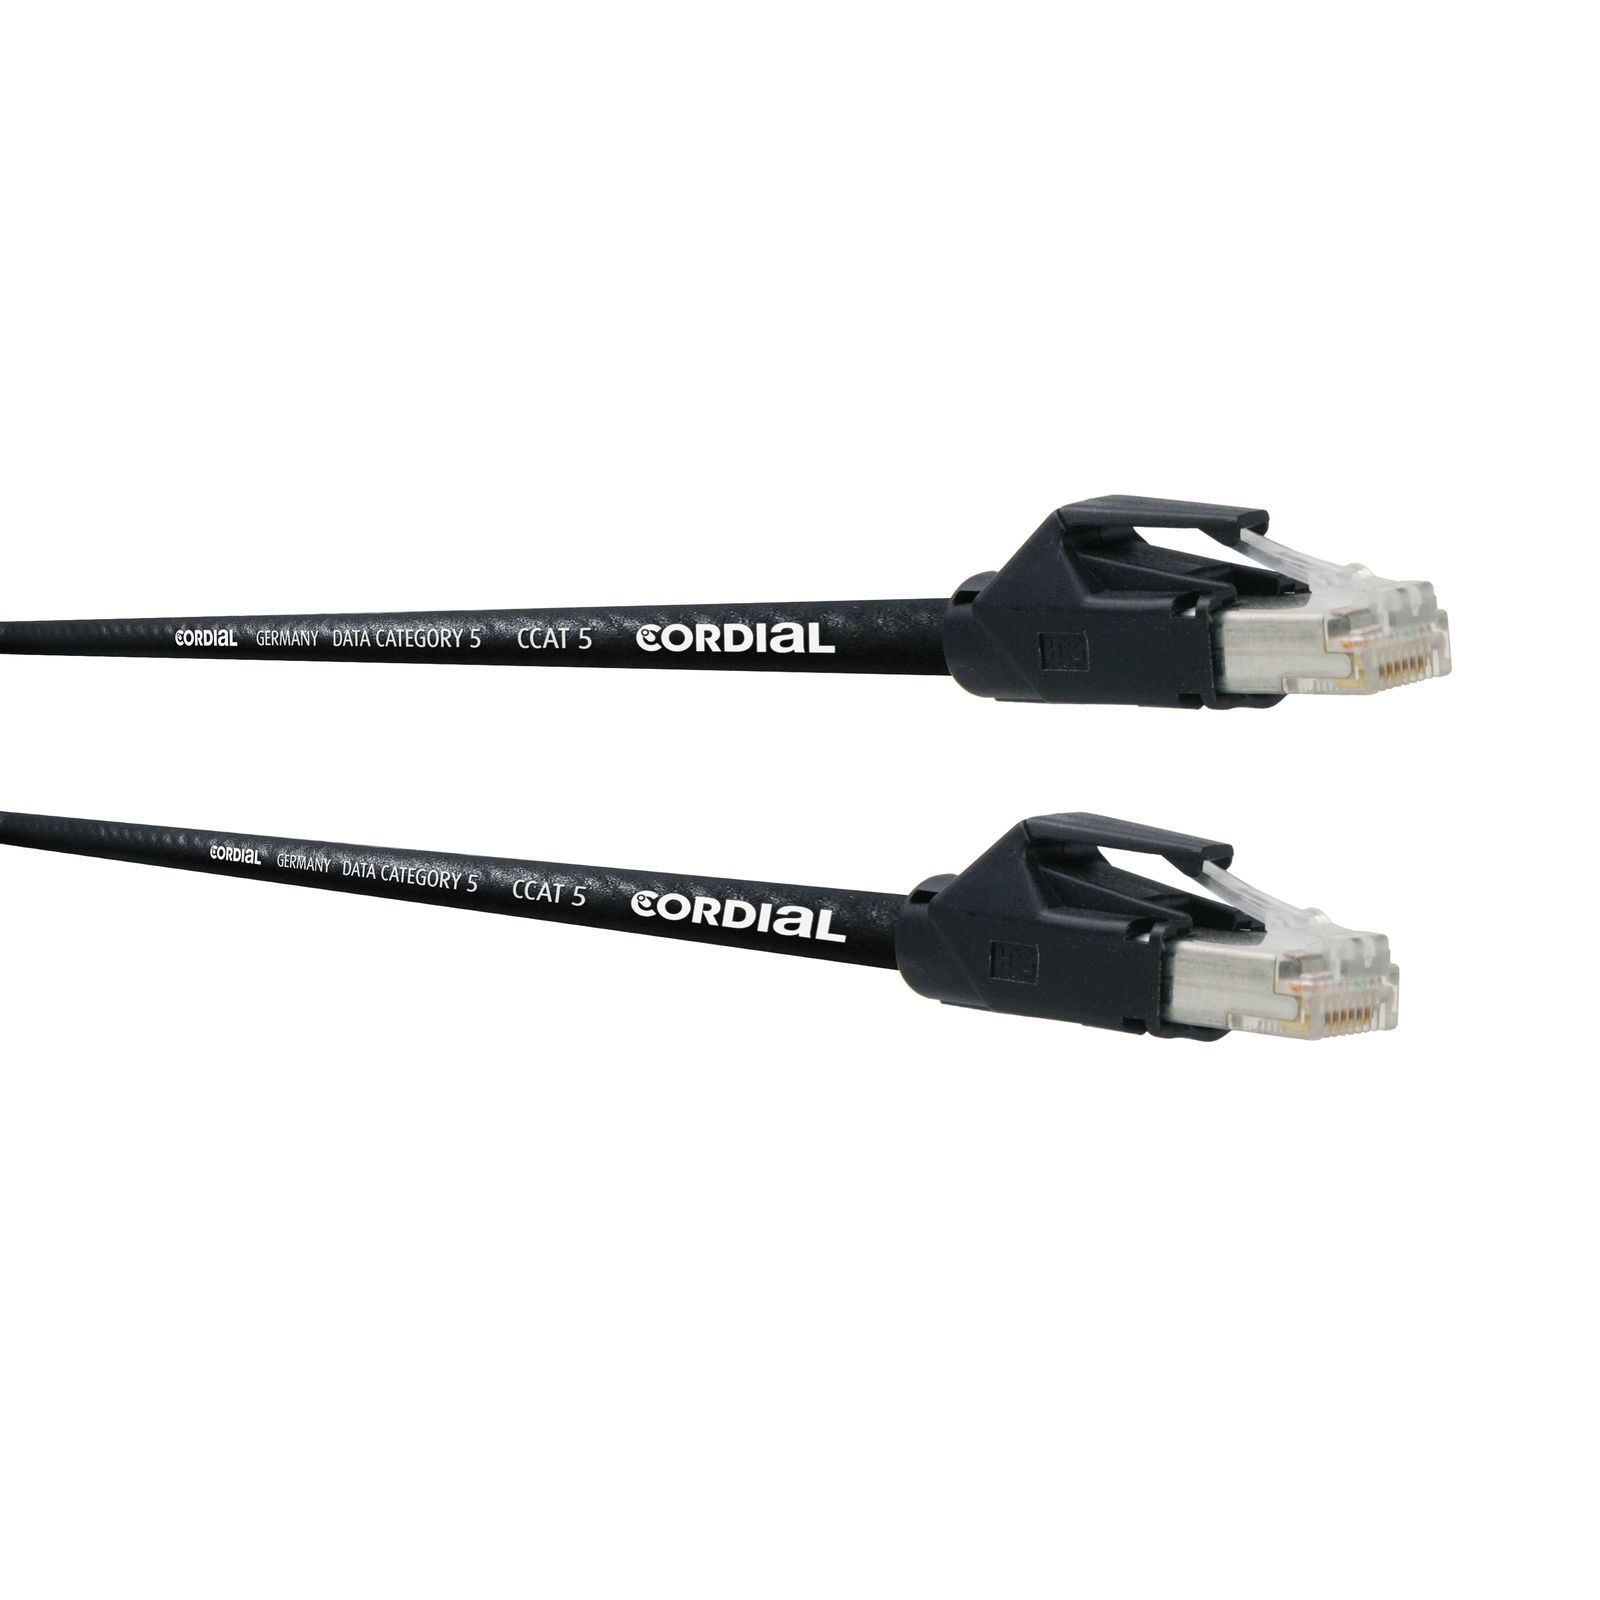 Cordial CSE HH 5 CAT 5 Data Cable 0,3m RJ 45 / RJ 45 Produktbillede